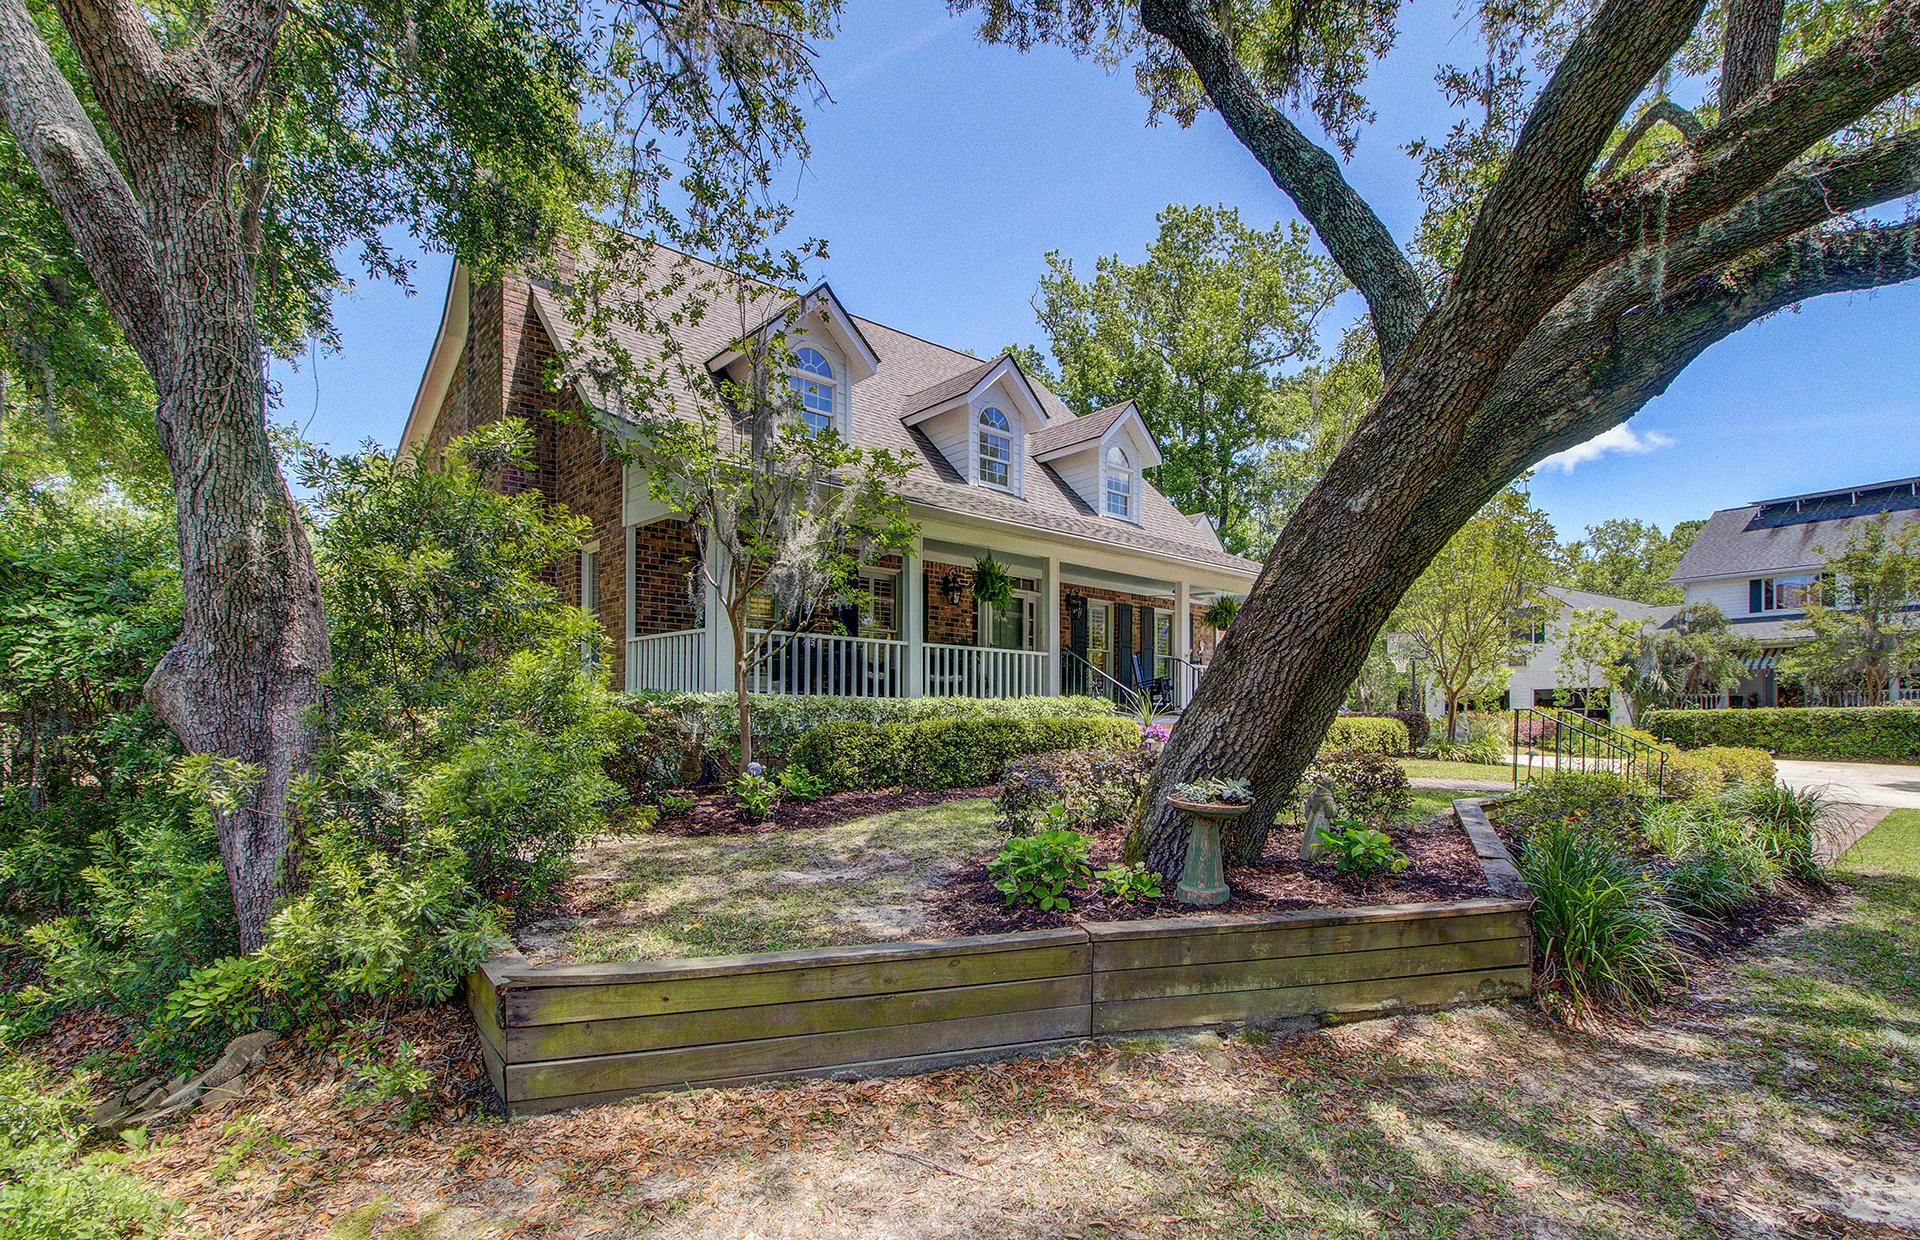 Indigo Point Homes For Sale - 90 Indigo Point, Charleston, SC - 22